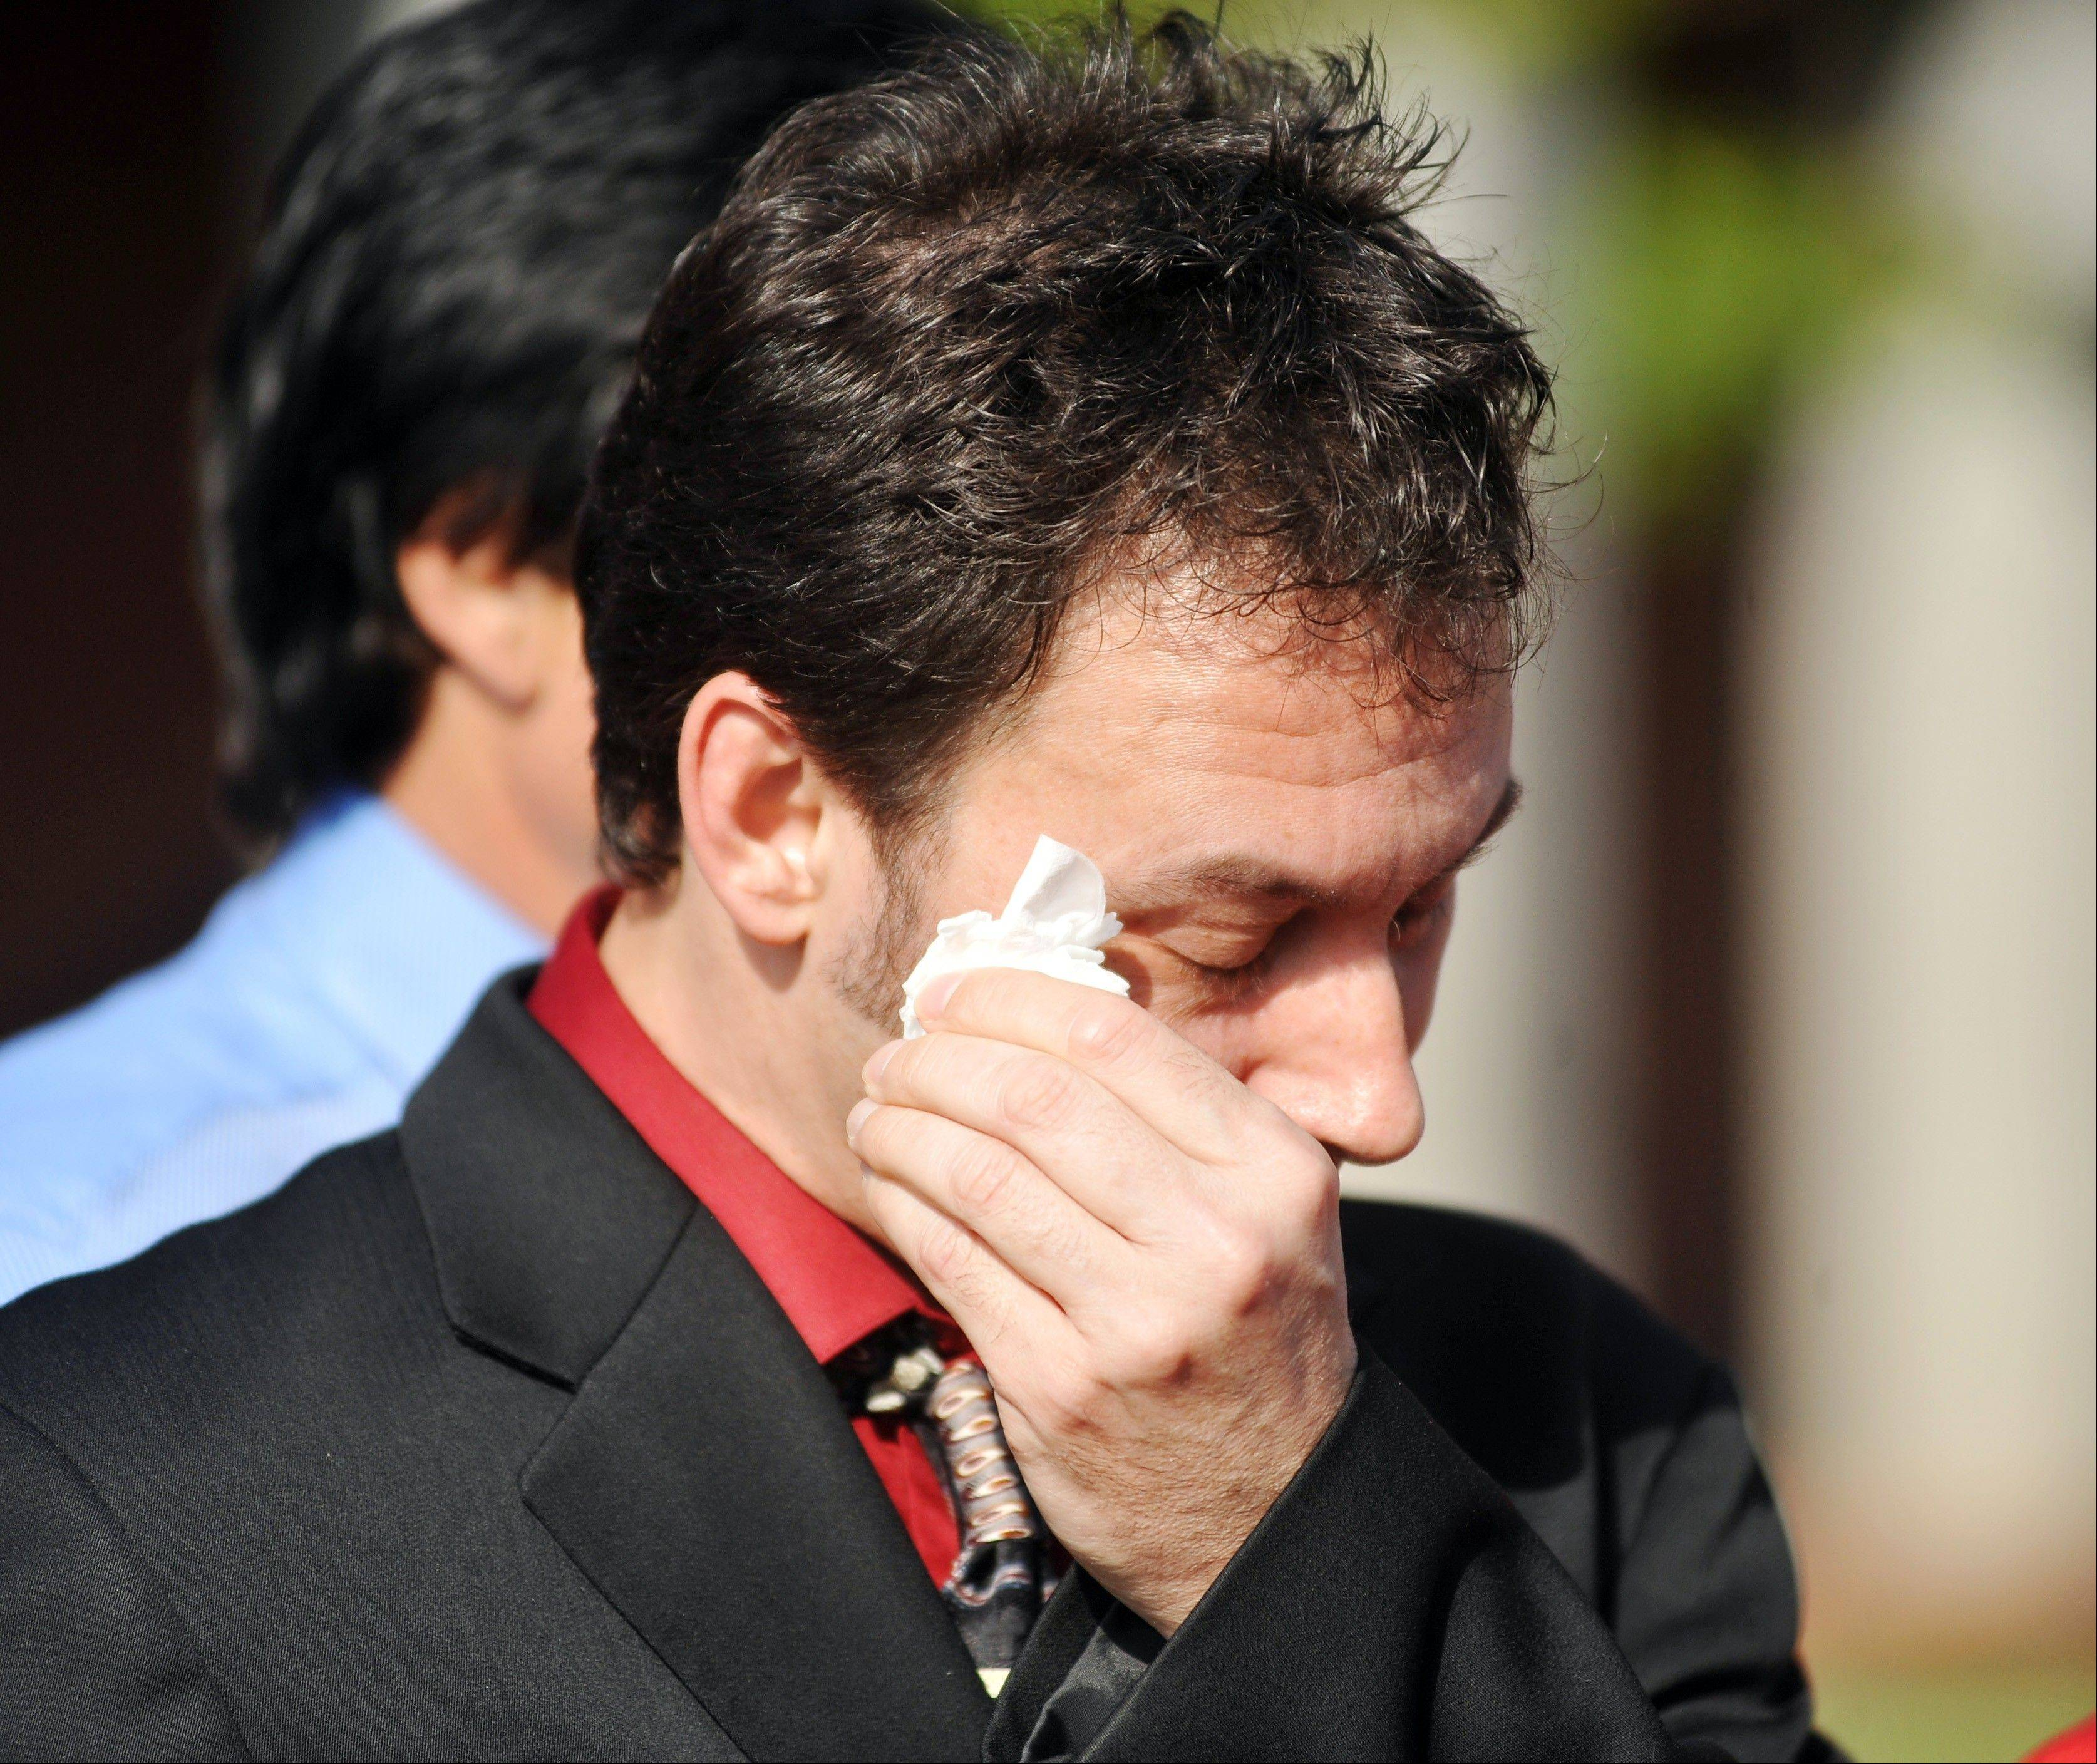 Paul Kevin Curtis, who had been in custody under suspicion of sending ricin-laced letters to President Barack Obama and others, wipes a tear from his eyes during a news conference following his release Tuesday, April 23, 2013 in Oxford, Miss. The charges were dismissed without prejudice, which means they could be reinstated if prosecutors so choose.